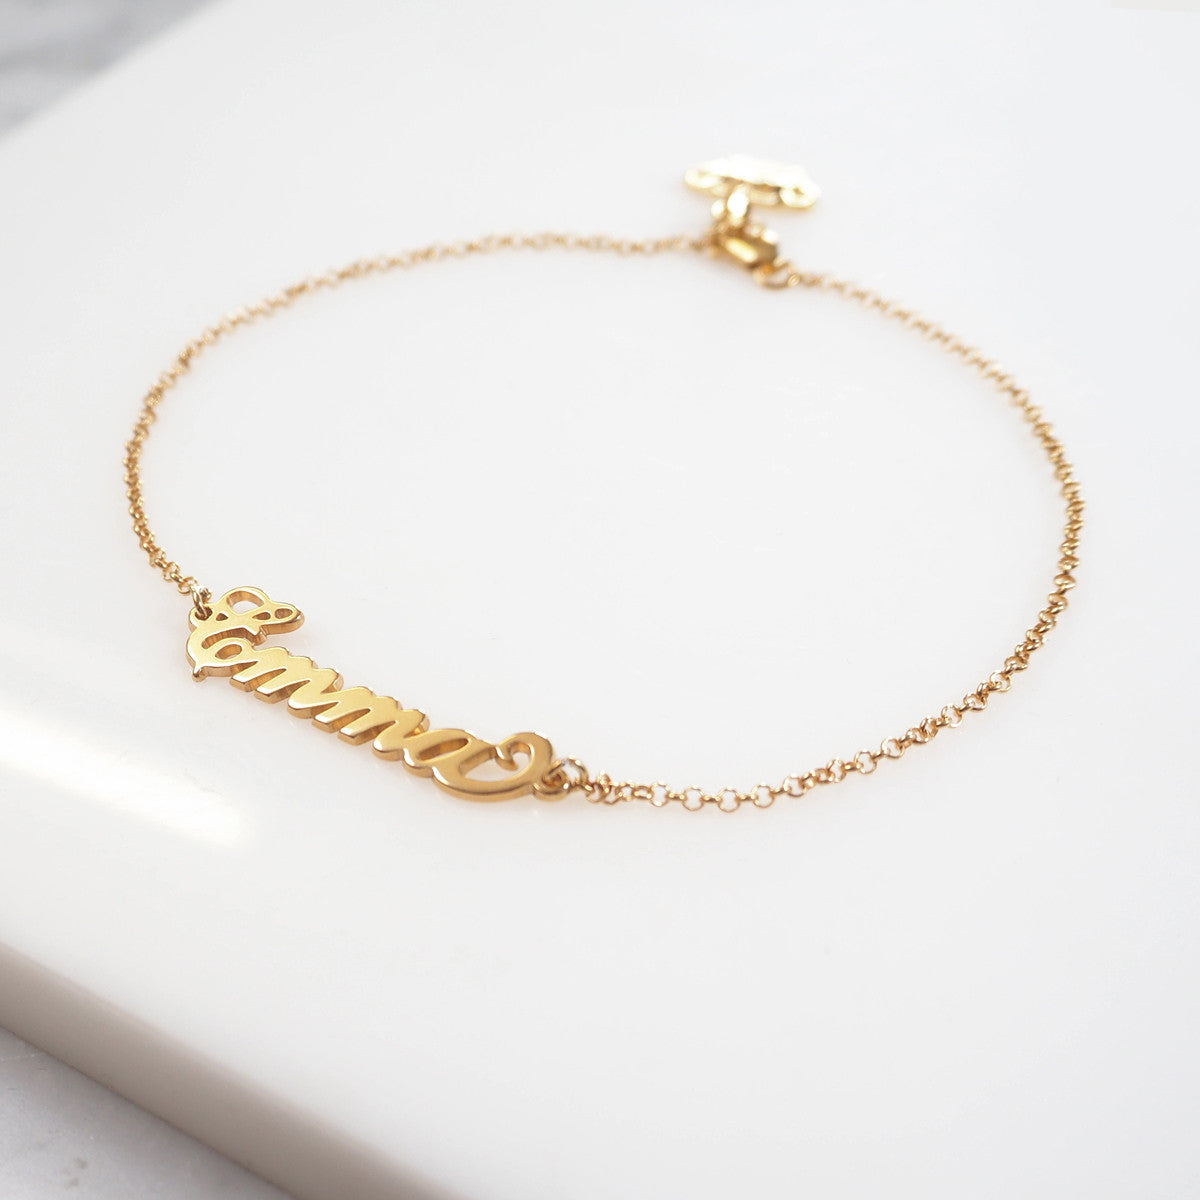 ankle around a wonderful anklet your com yrceusm rose gold styleskier name